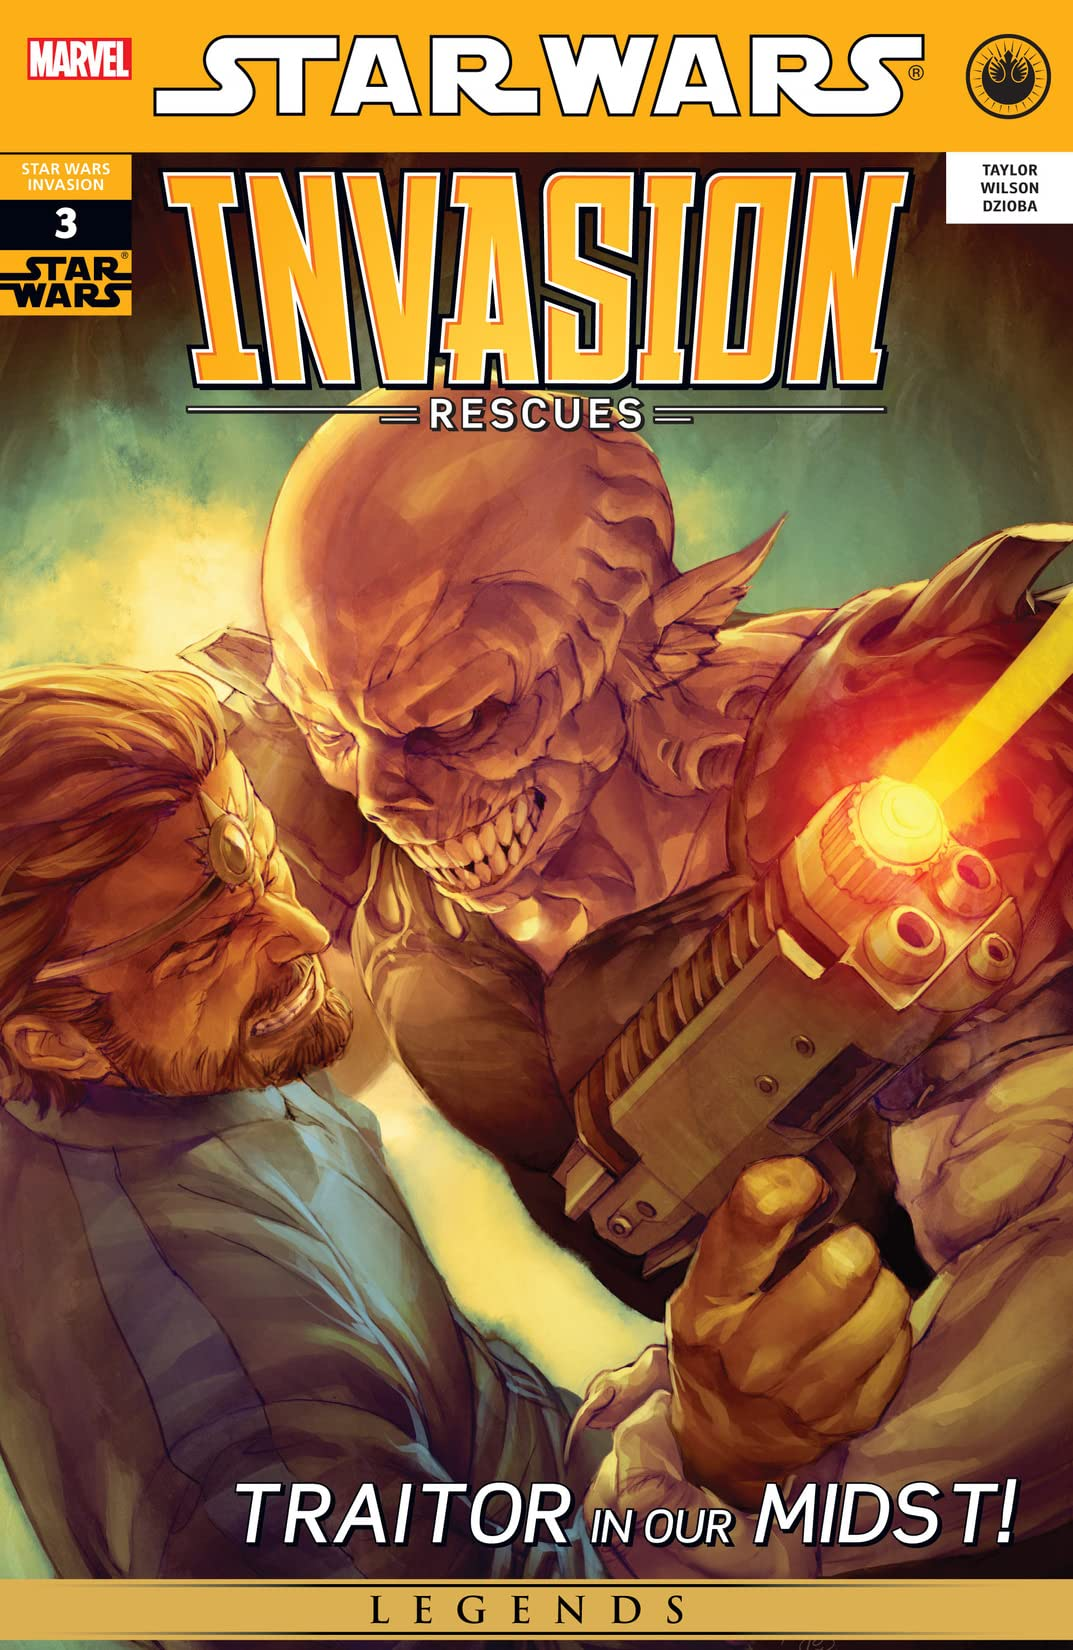 Star Wars: Invasion - Rescues (2010) #3 (of 6)